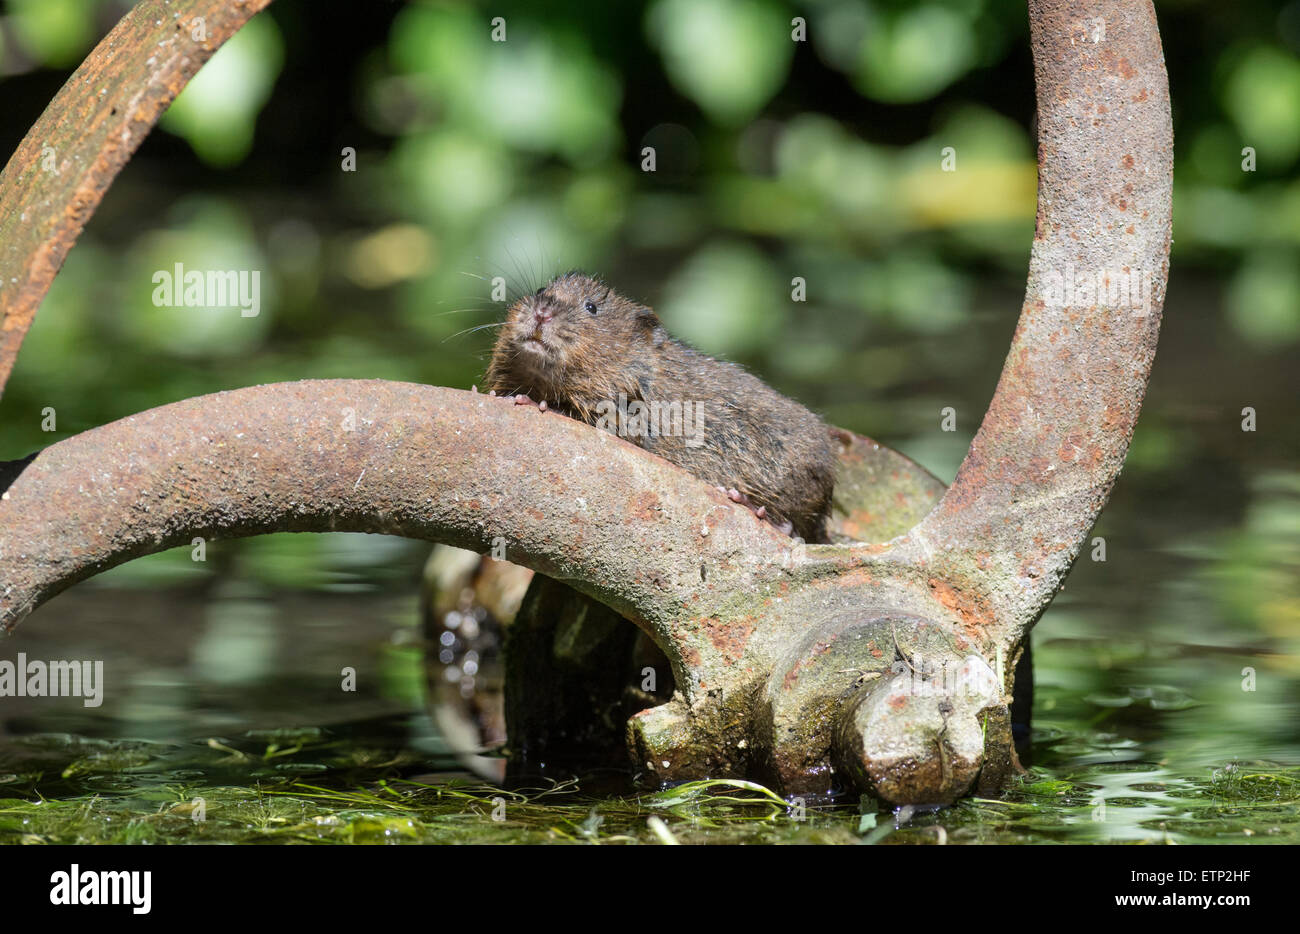 Water vole (Arvicola terrestris) exploring an old pump-house wheel dumped in mid-stream - Stock Image